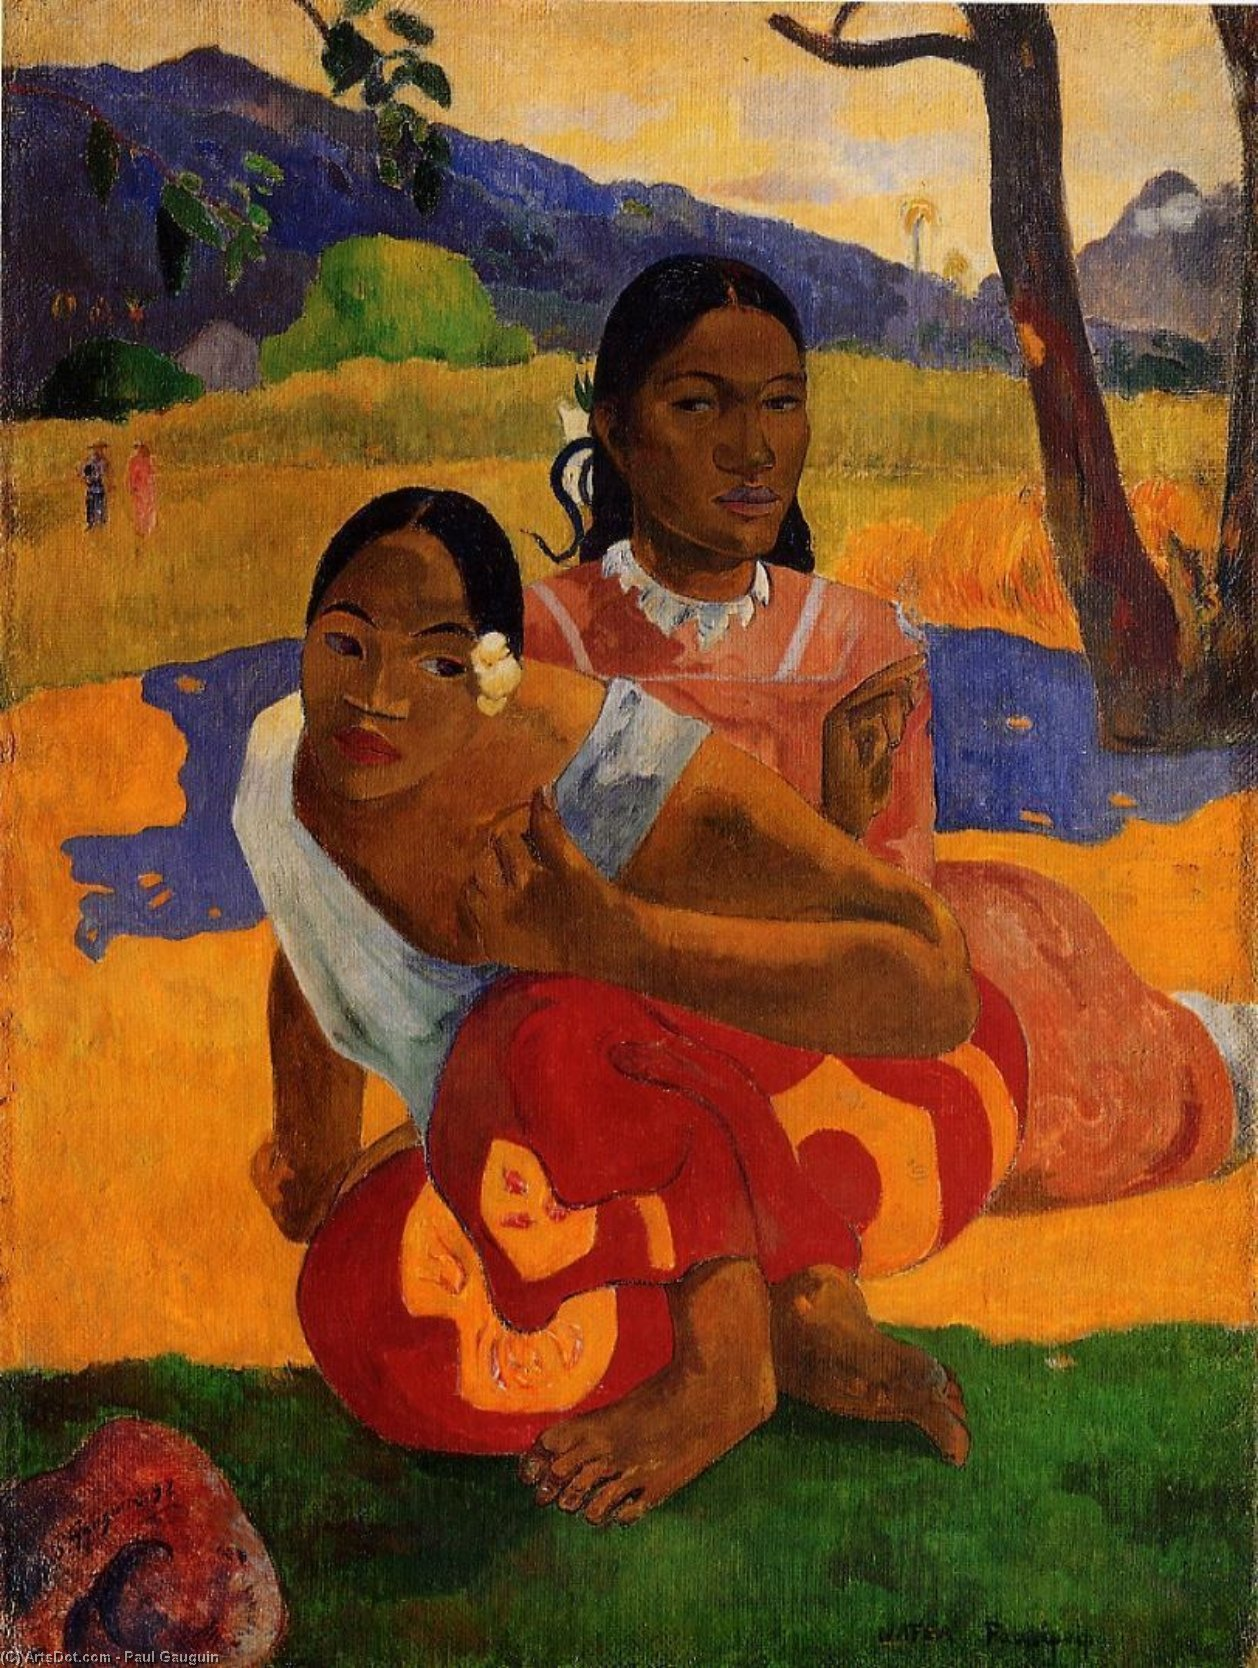 Nafeaffaa Ipolpo (also known as When Will You Marry?) - Paul Gauguin